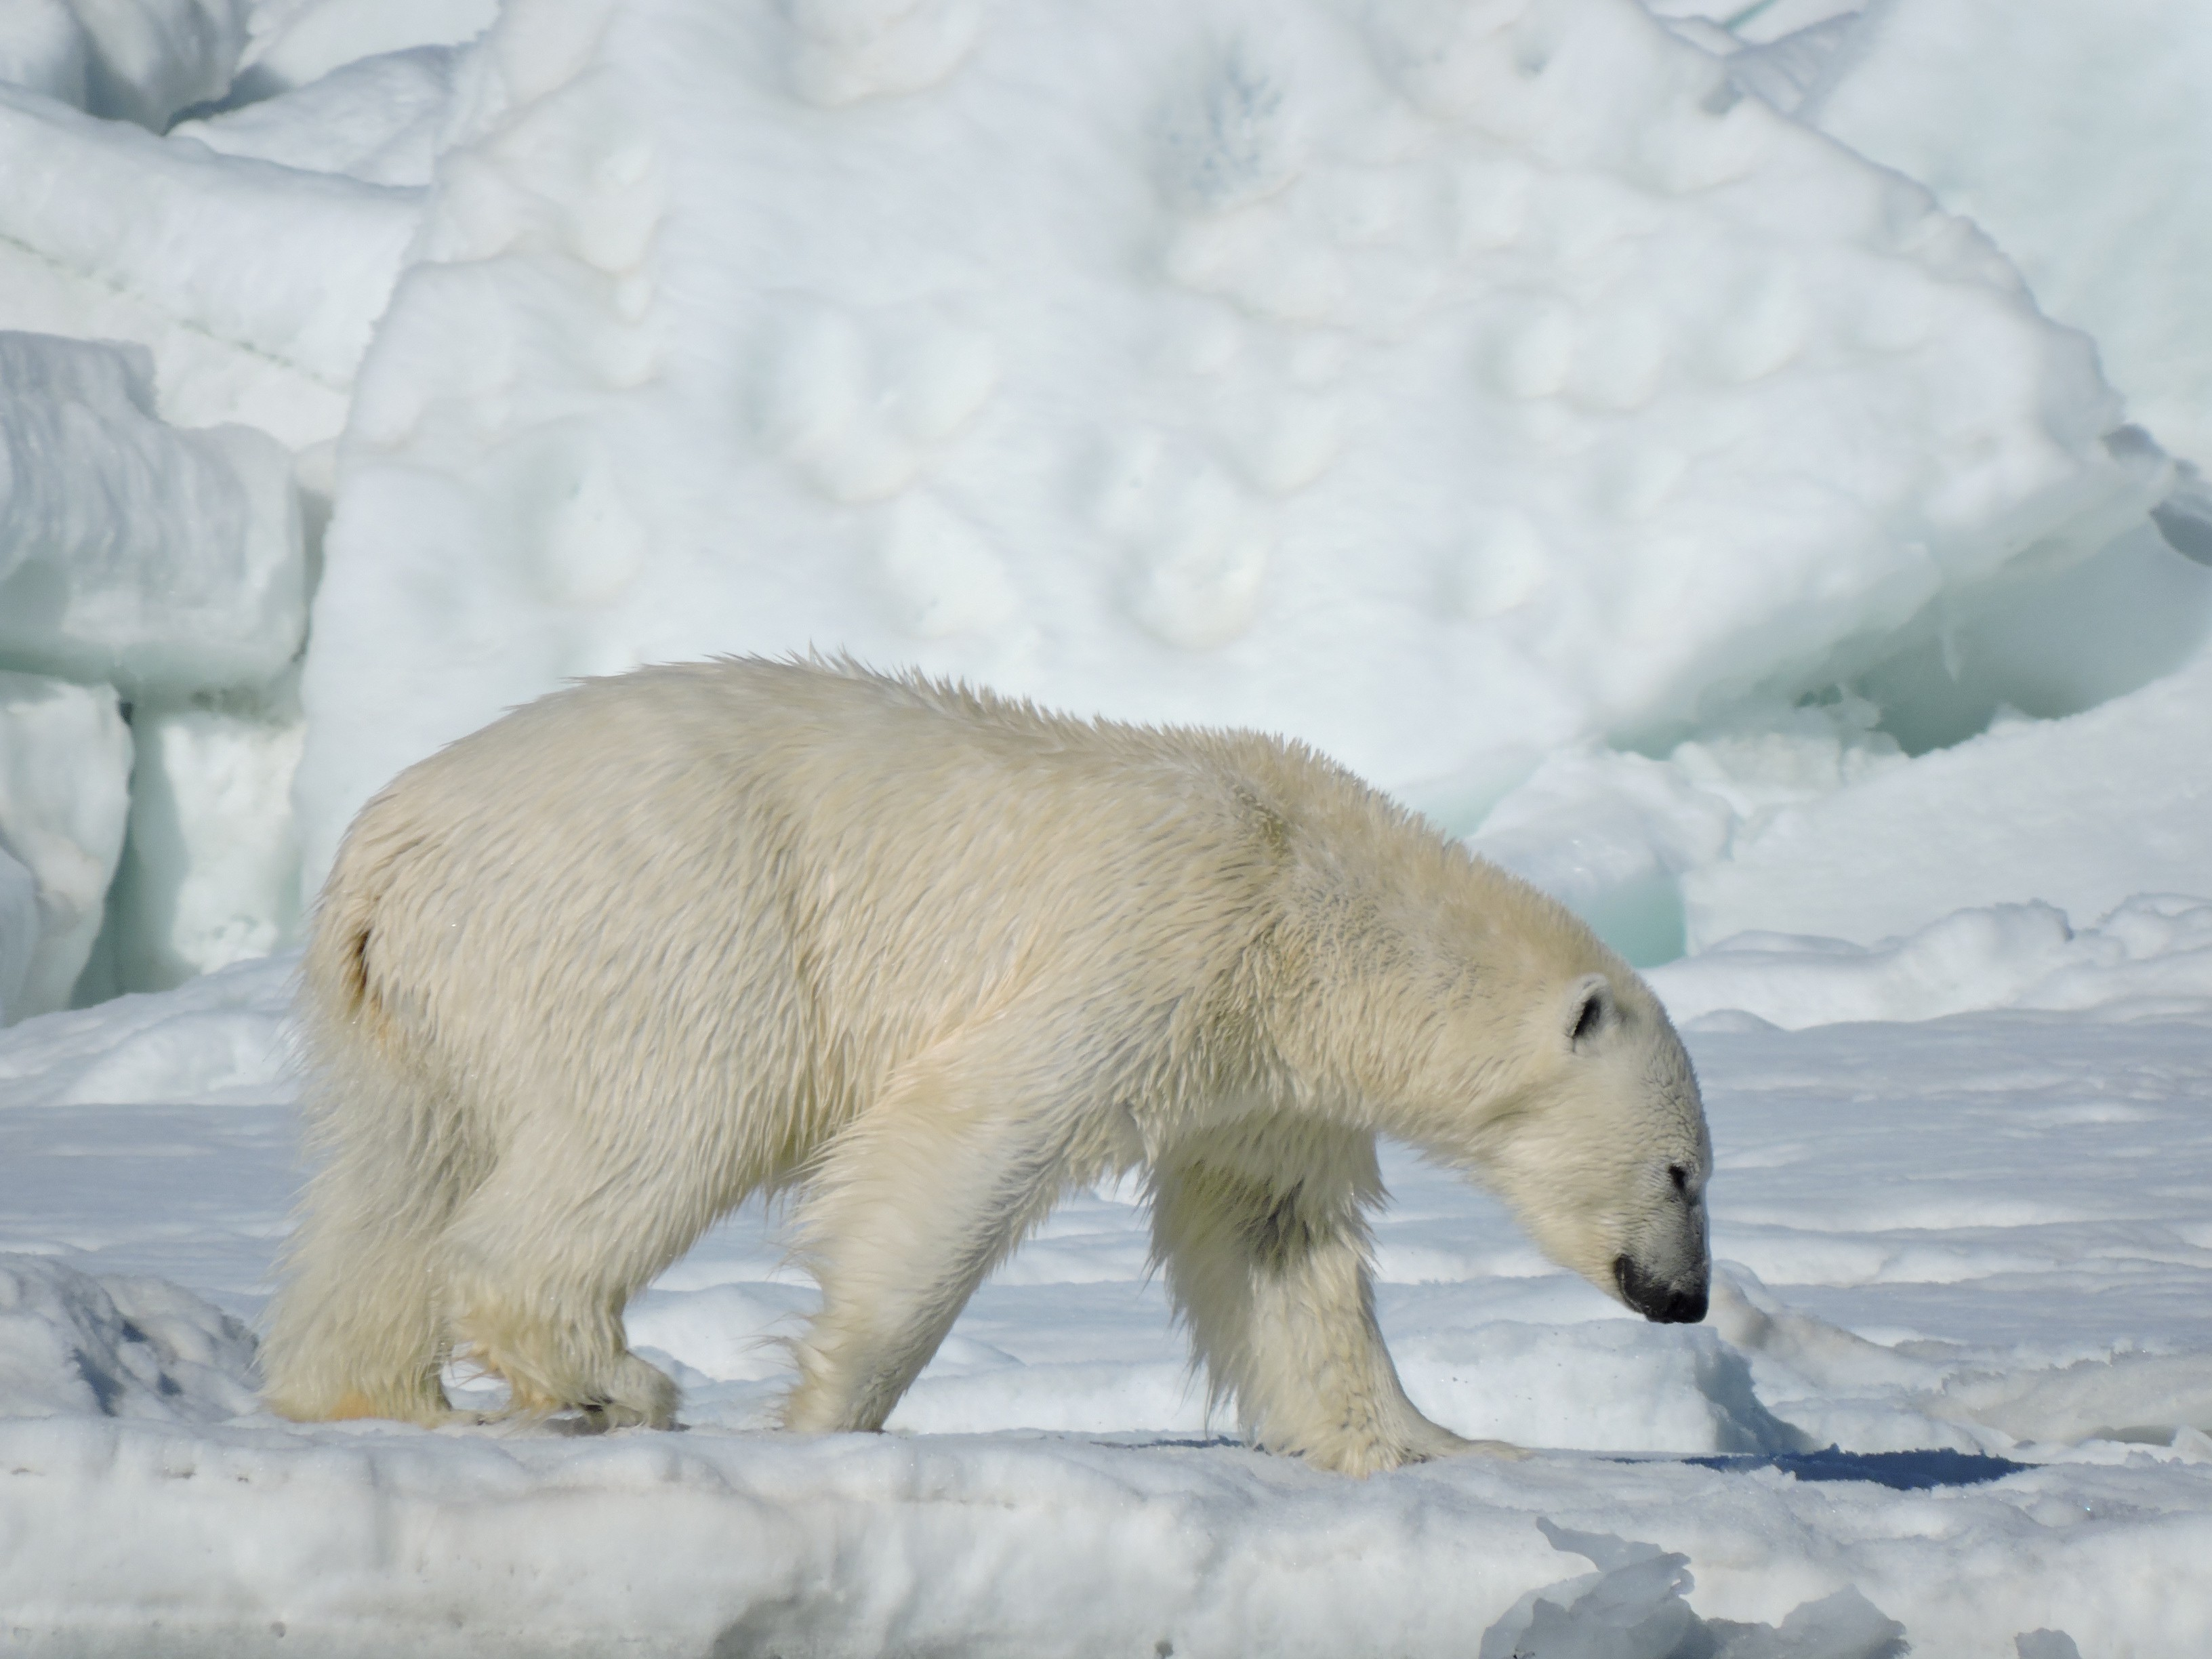 Side view of a polar bear walking with head down, large ice chunks in the background.